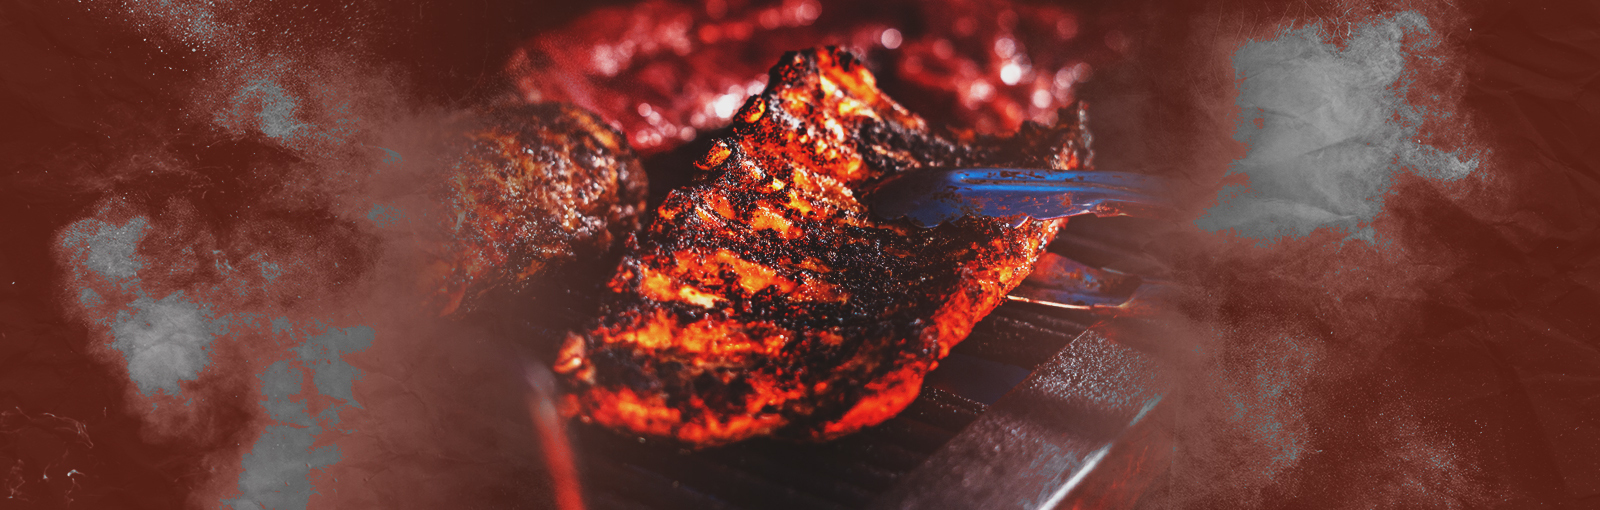 Three Food Writers Battle Over BBQ Rib Recipes, Just In Time For July 4th